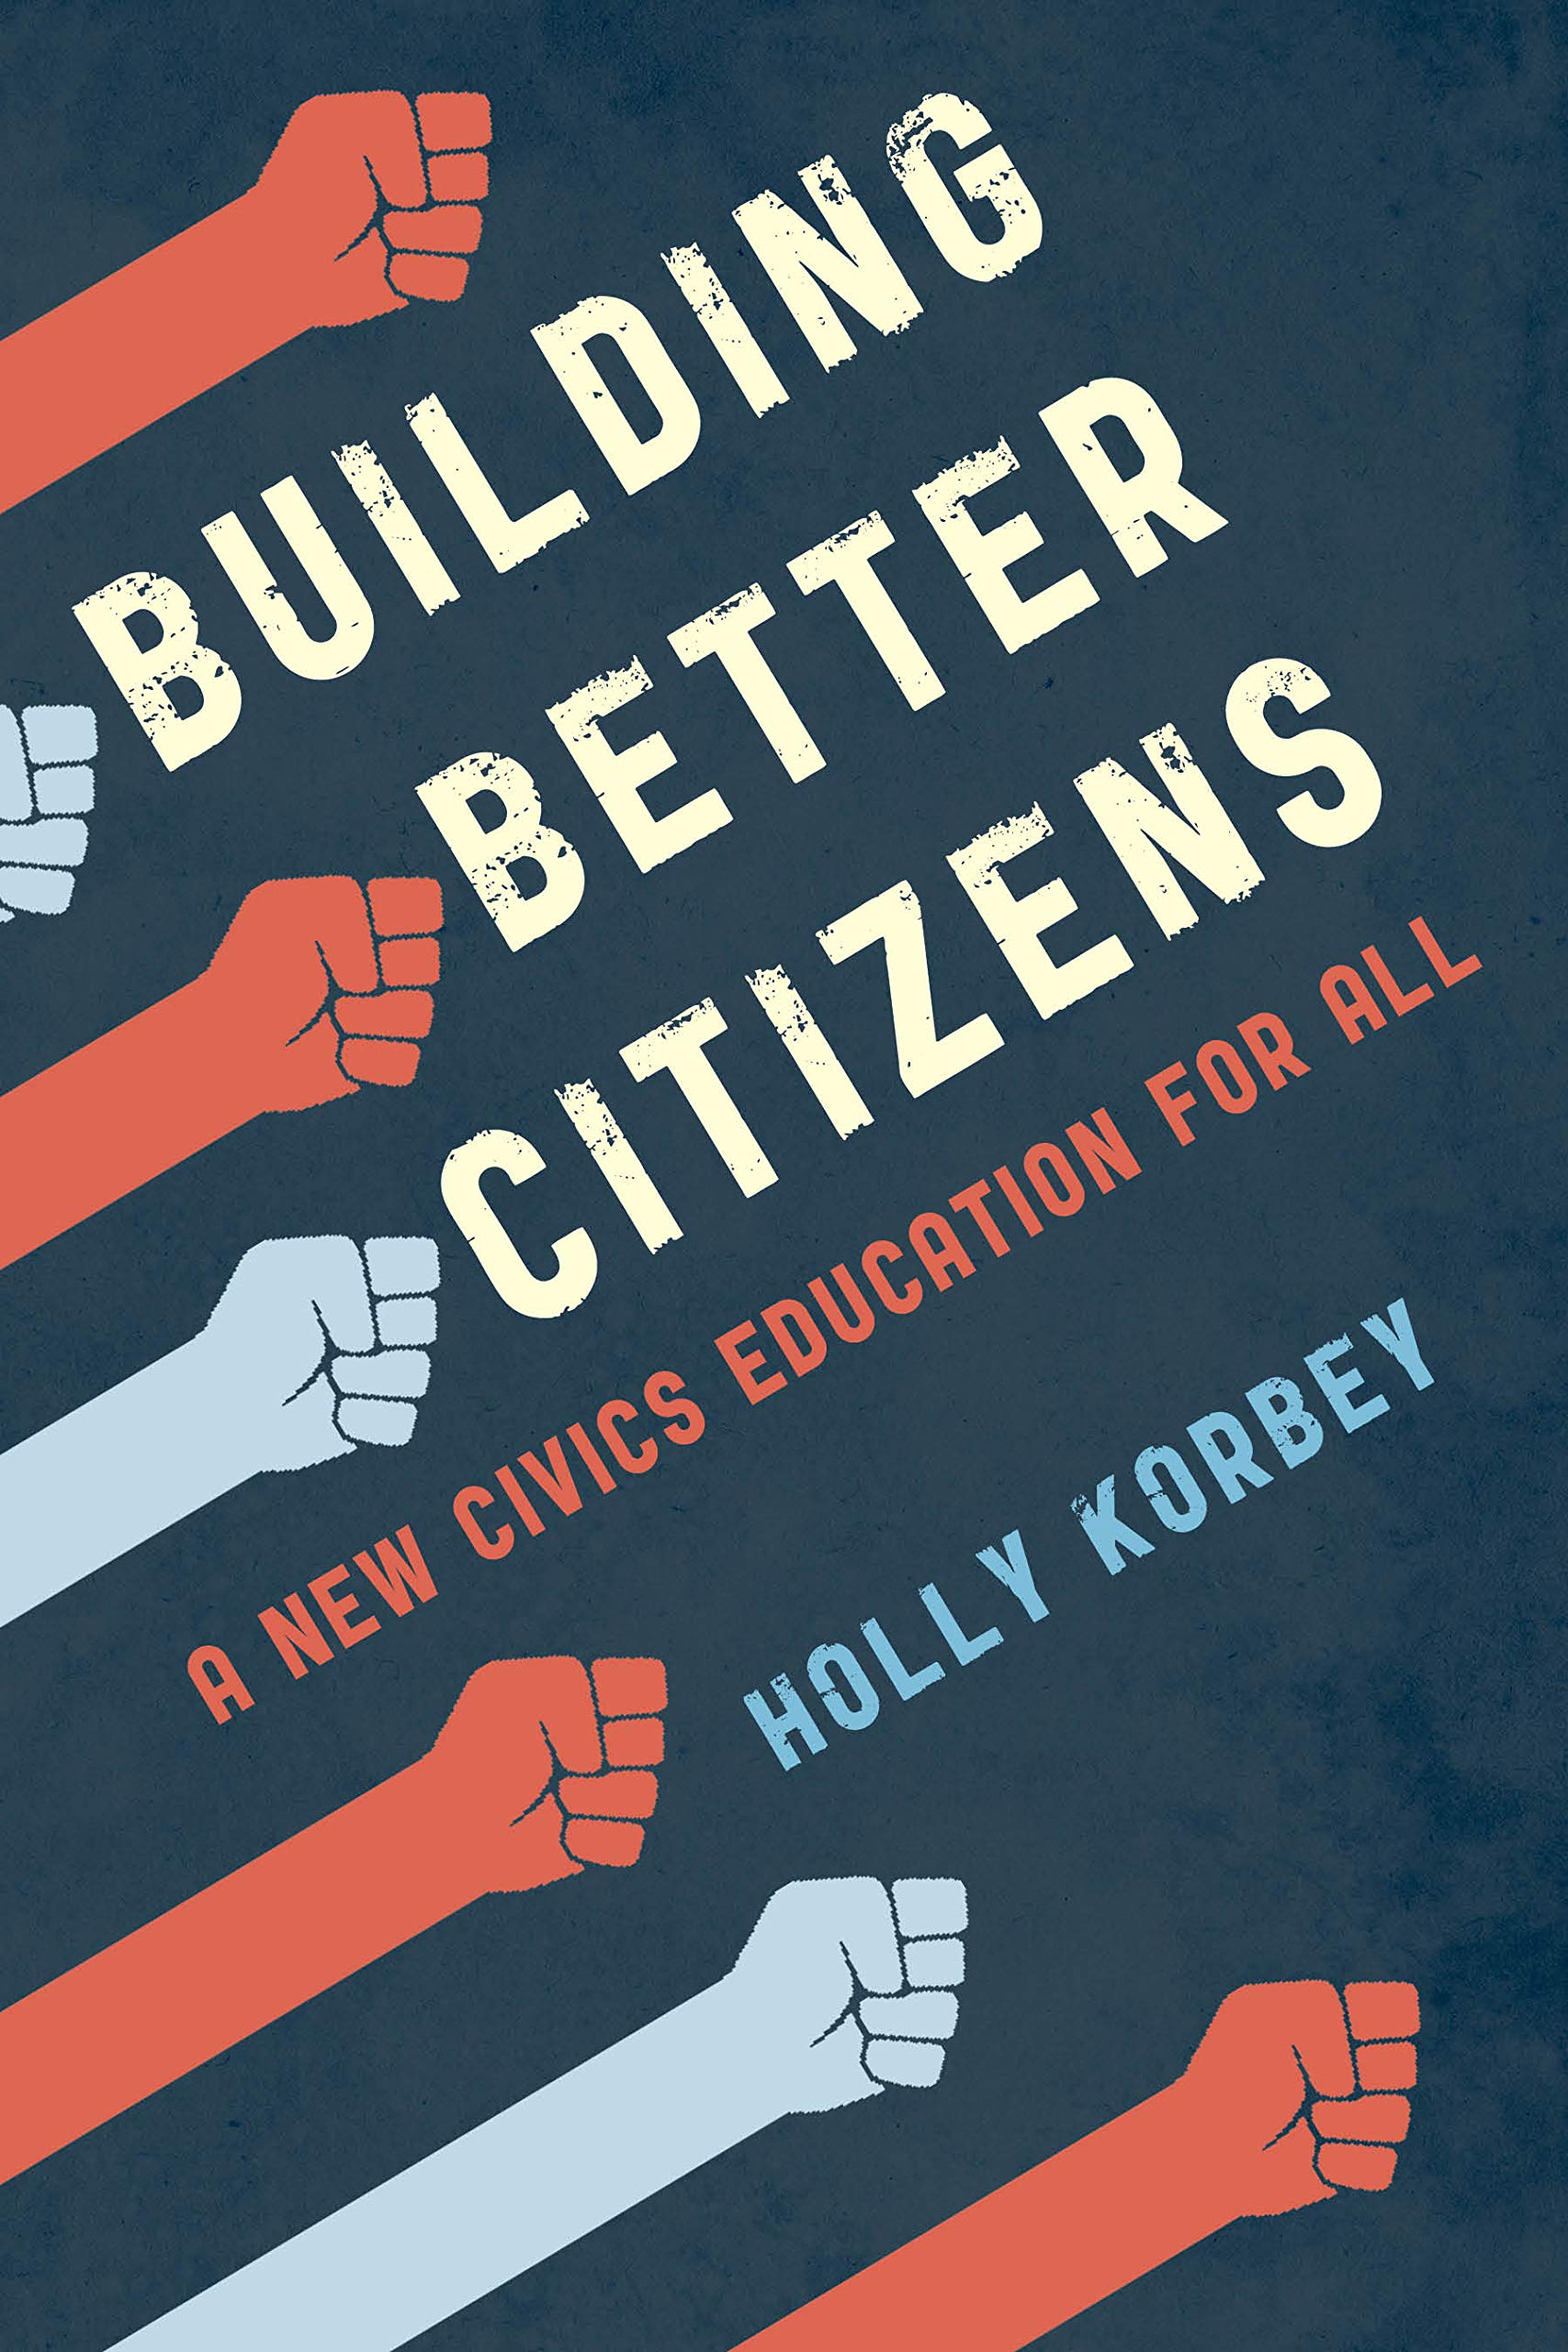 Download Building Better Citizens: A New Civics Education for All by Holly Korbey